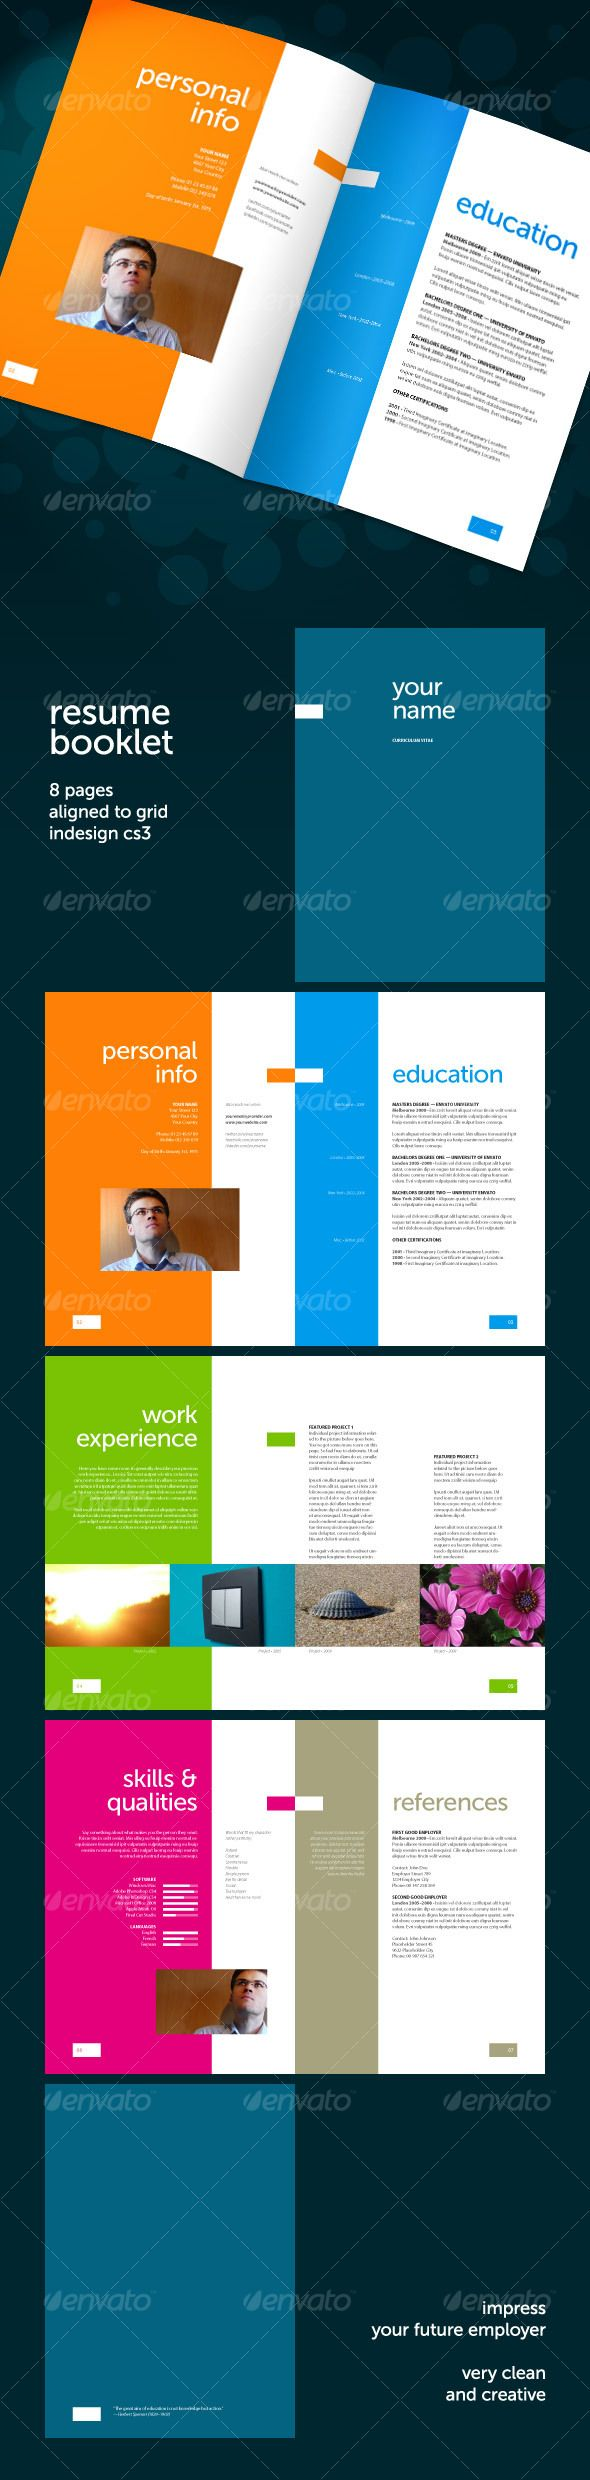 Resume Booklet Indesign